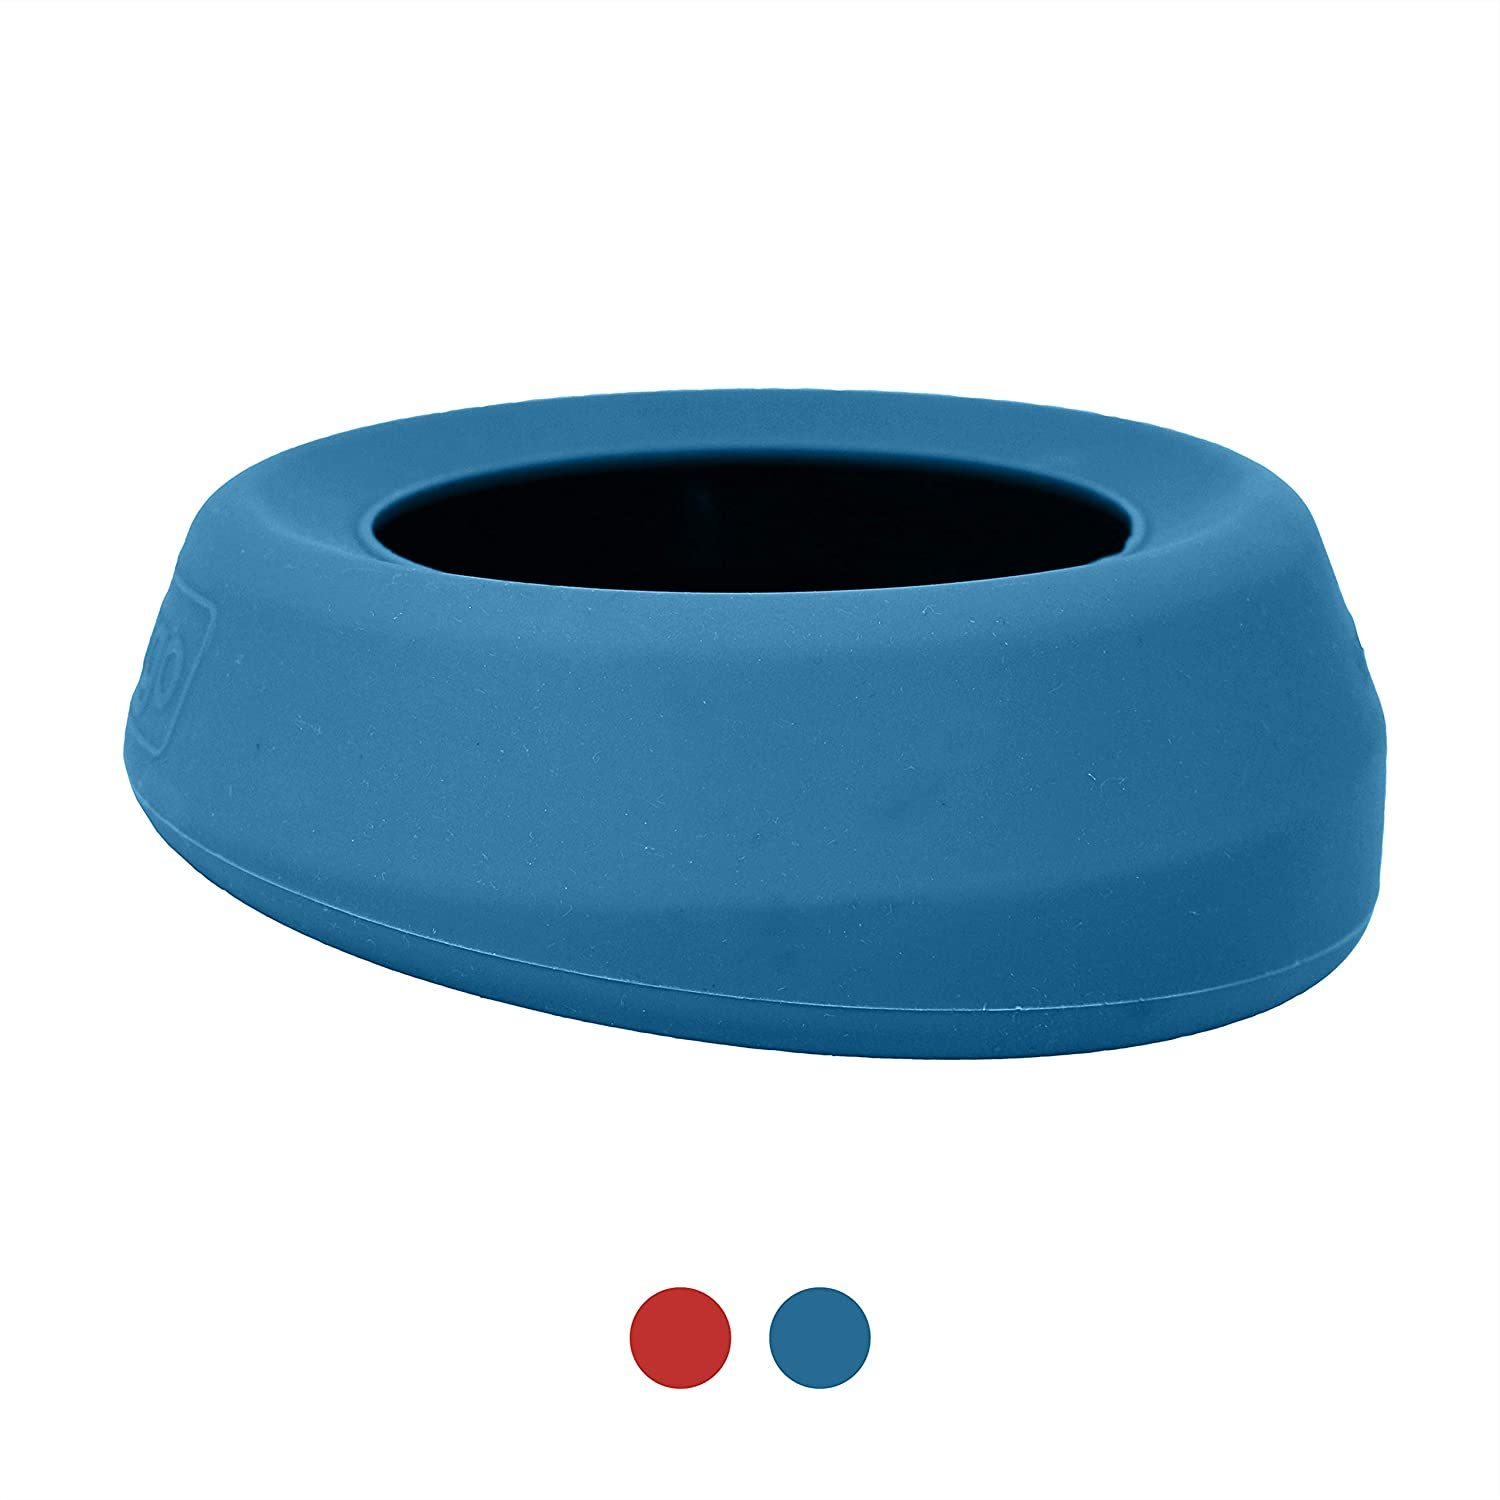 Kurgo No Spill Dog Travel Bowl | Portable No-Mess Water Bowl for Dogs | Splash Less Pet Bowl for Car Travel | Dog Travel Accessories | Splash Free Wander Water Bowl | Blue & Red | 24 oz